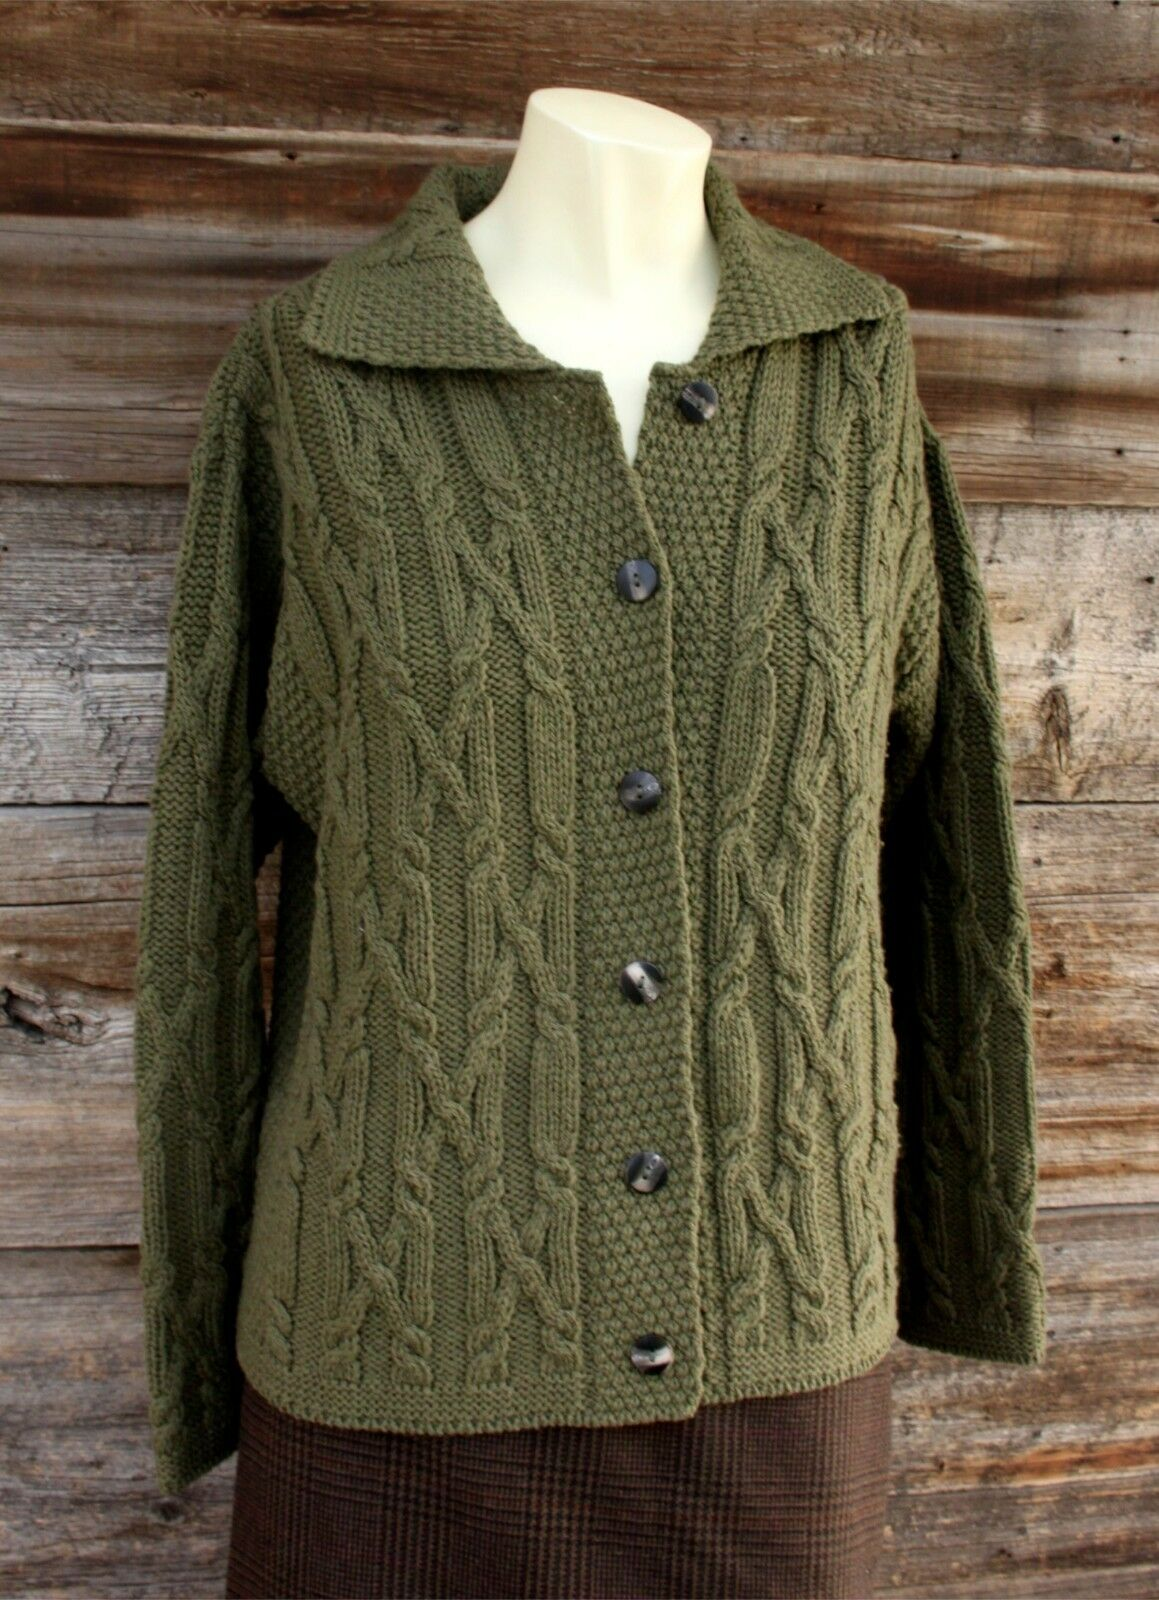 Inis Crafts Dark Green Green Green Cable Knit Merino Wool Cardigan Sweater Size Medium 9614bd